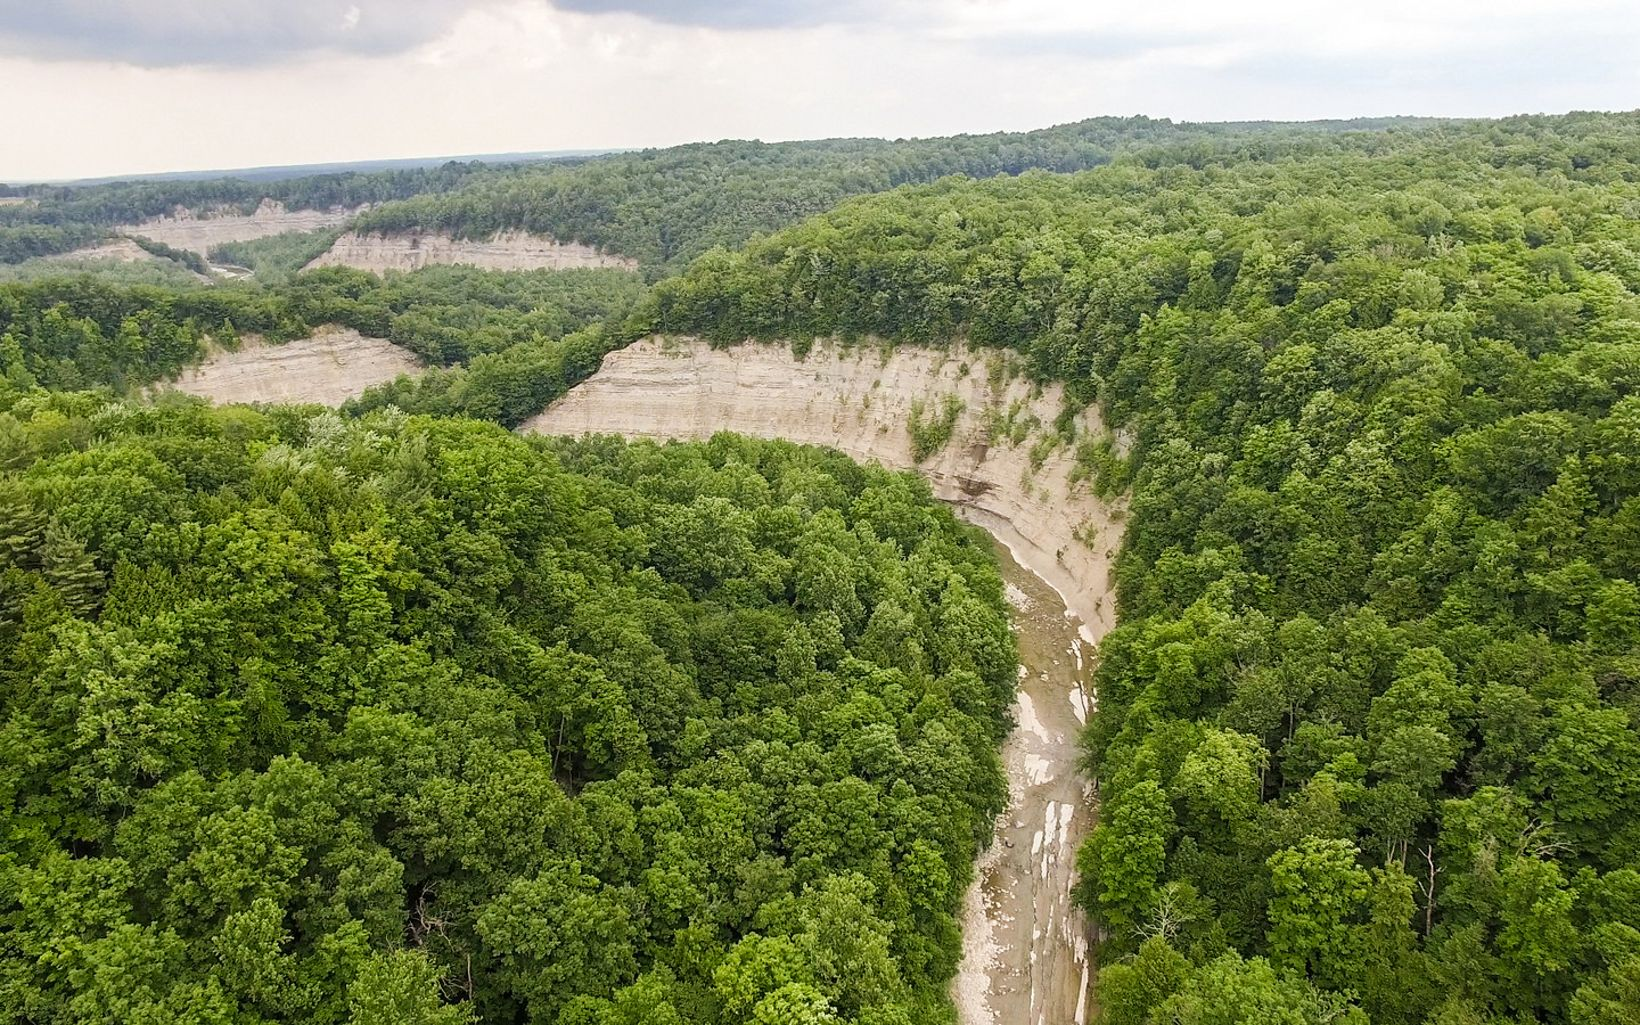 Aerial footage of Zoar Valley